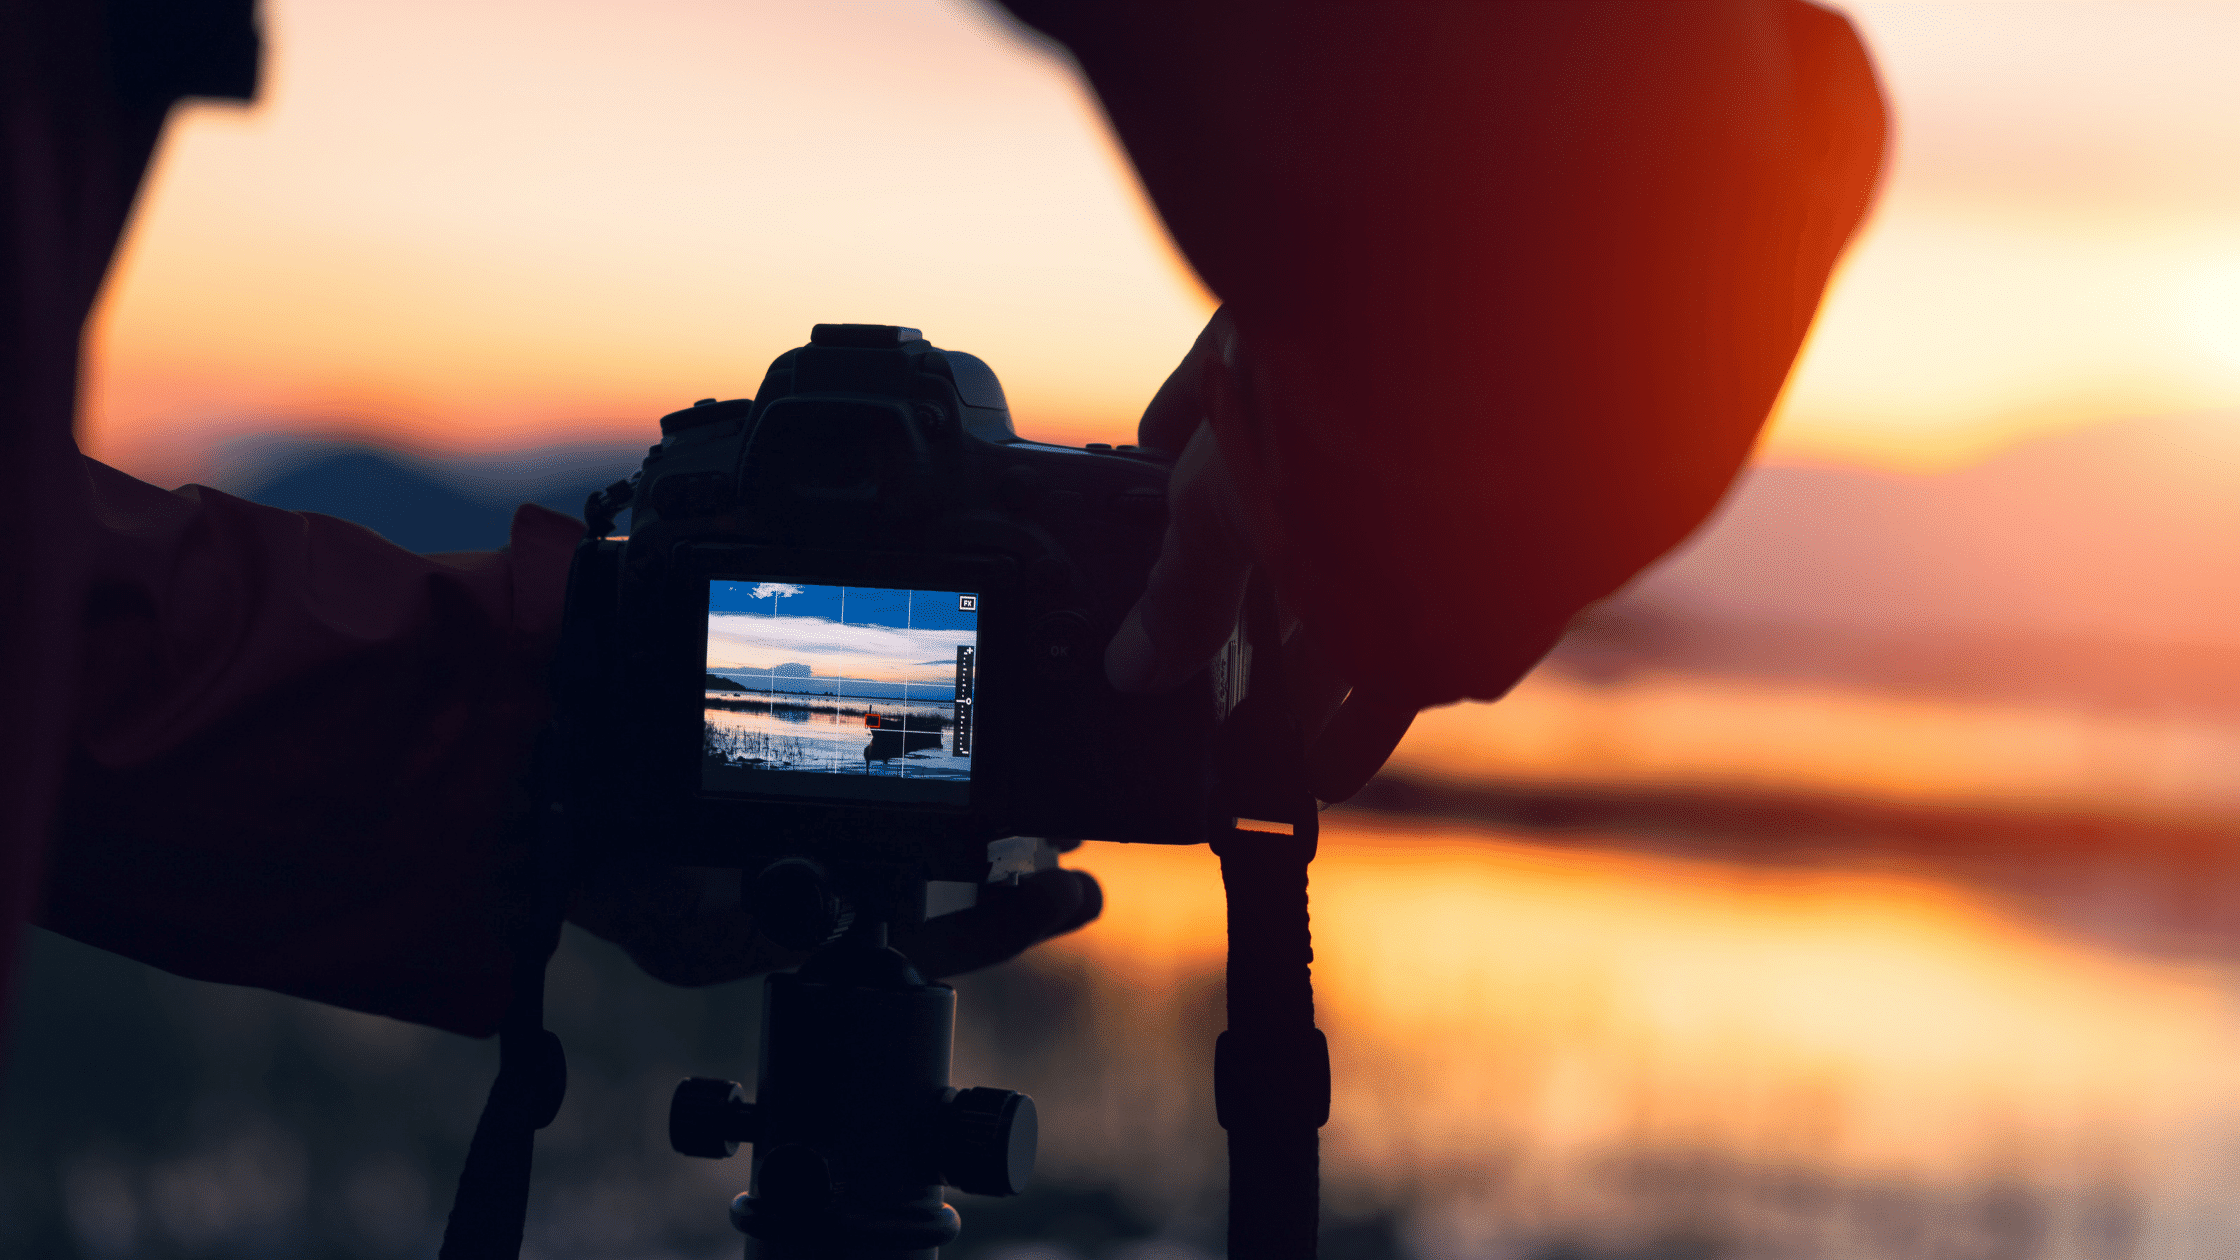 Low Light Photography: How to Shoot Without a Tripod